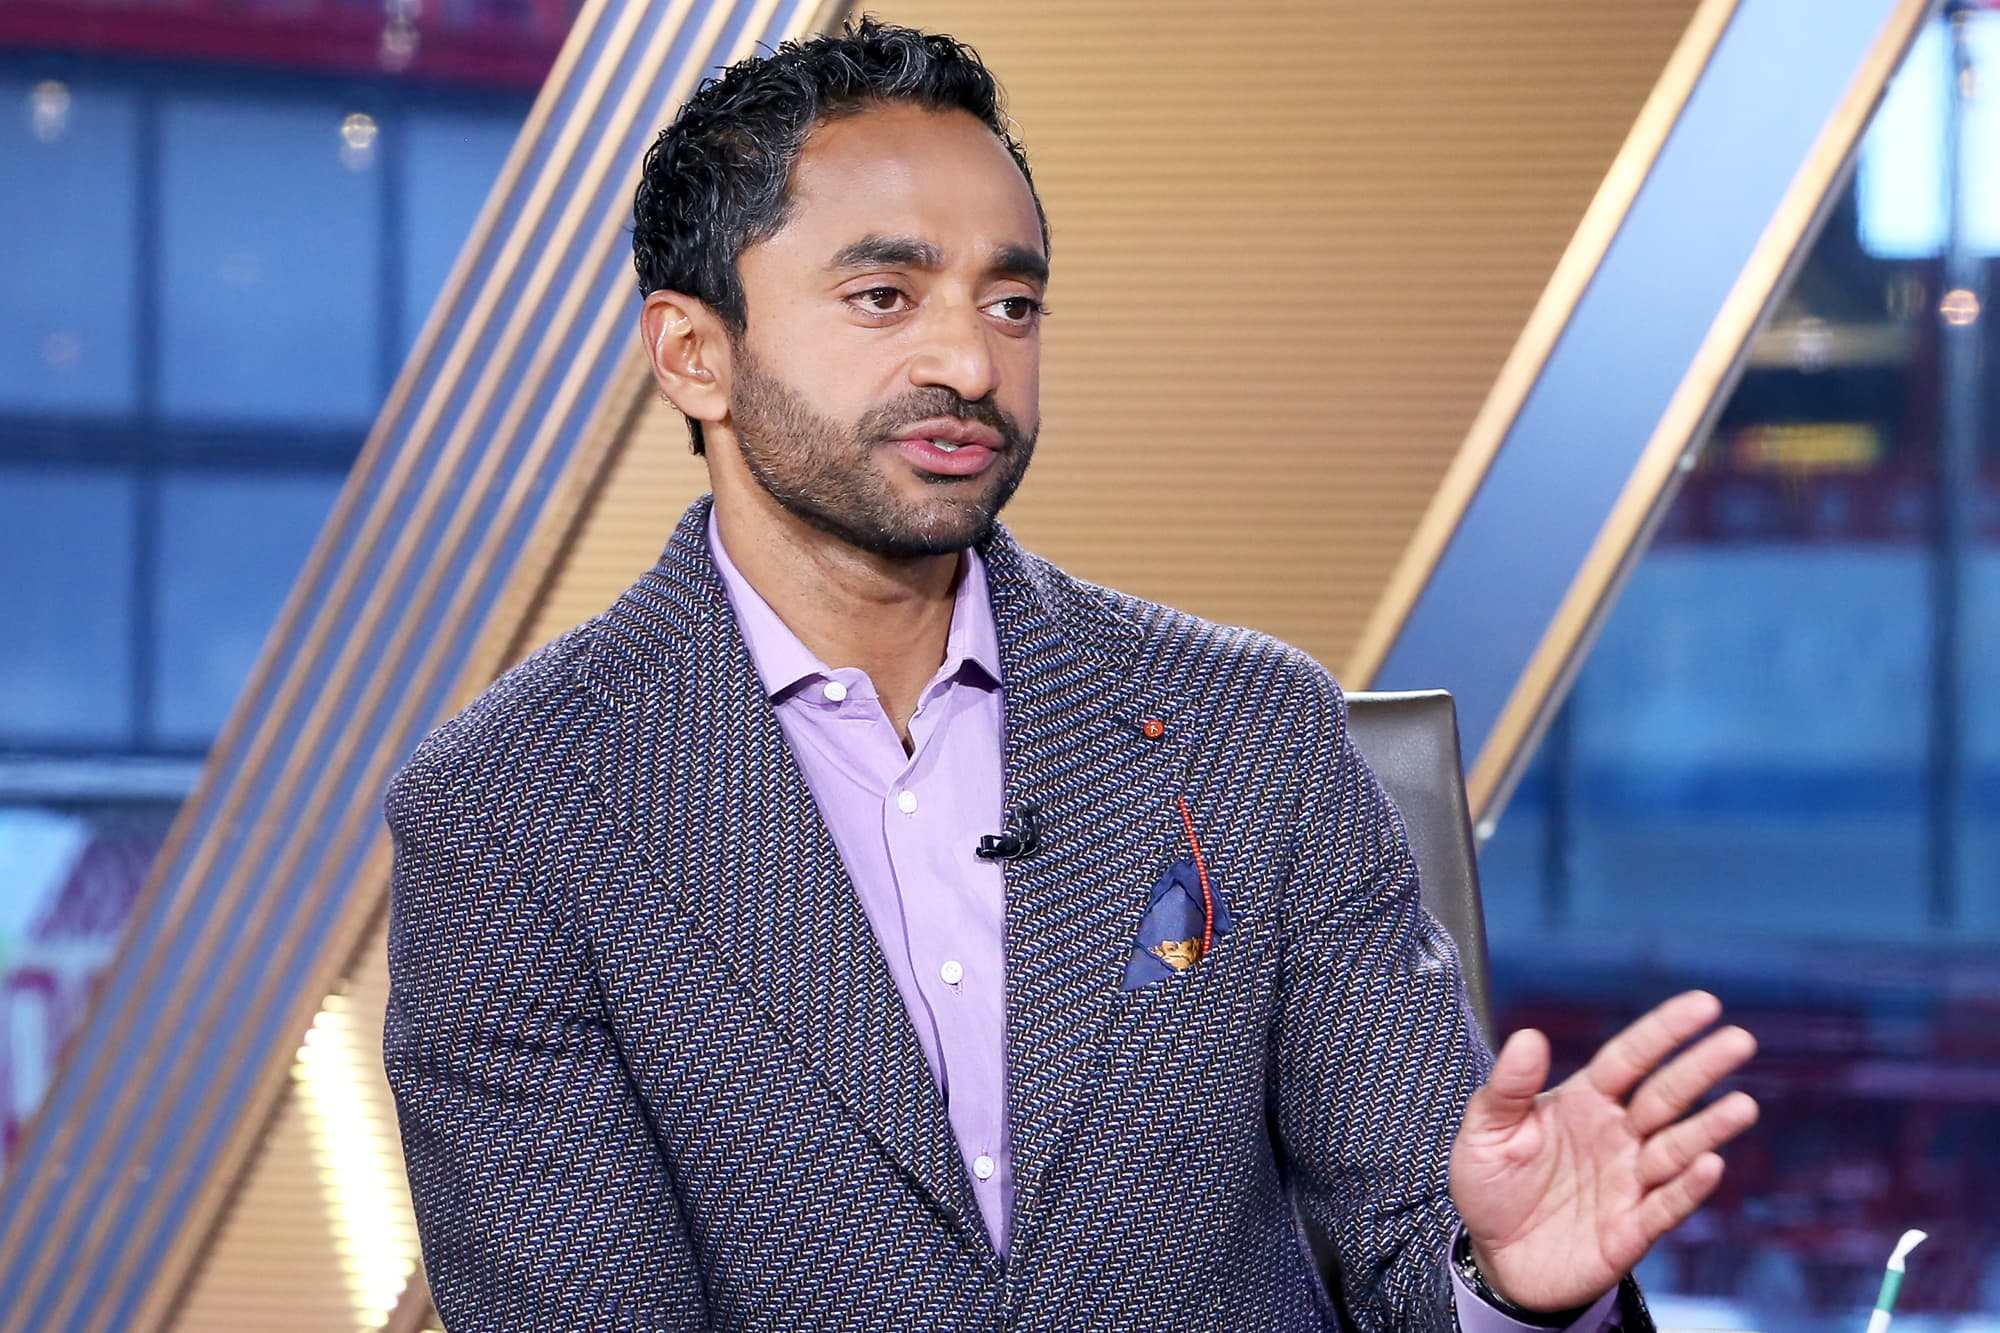 Early Facebook exec Chamath Palihapitiya says platform could have fixed its product years ago